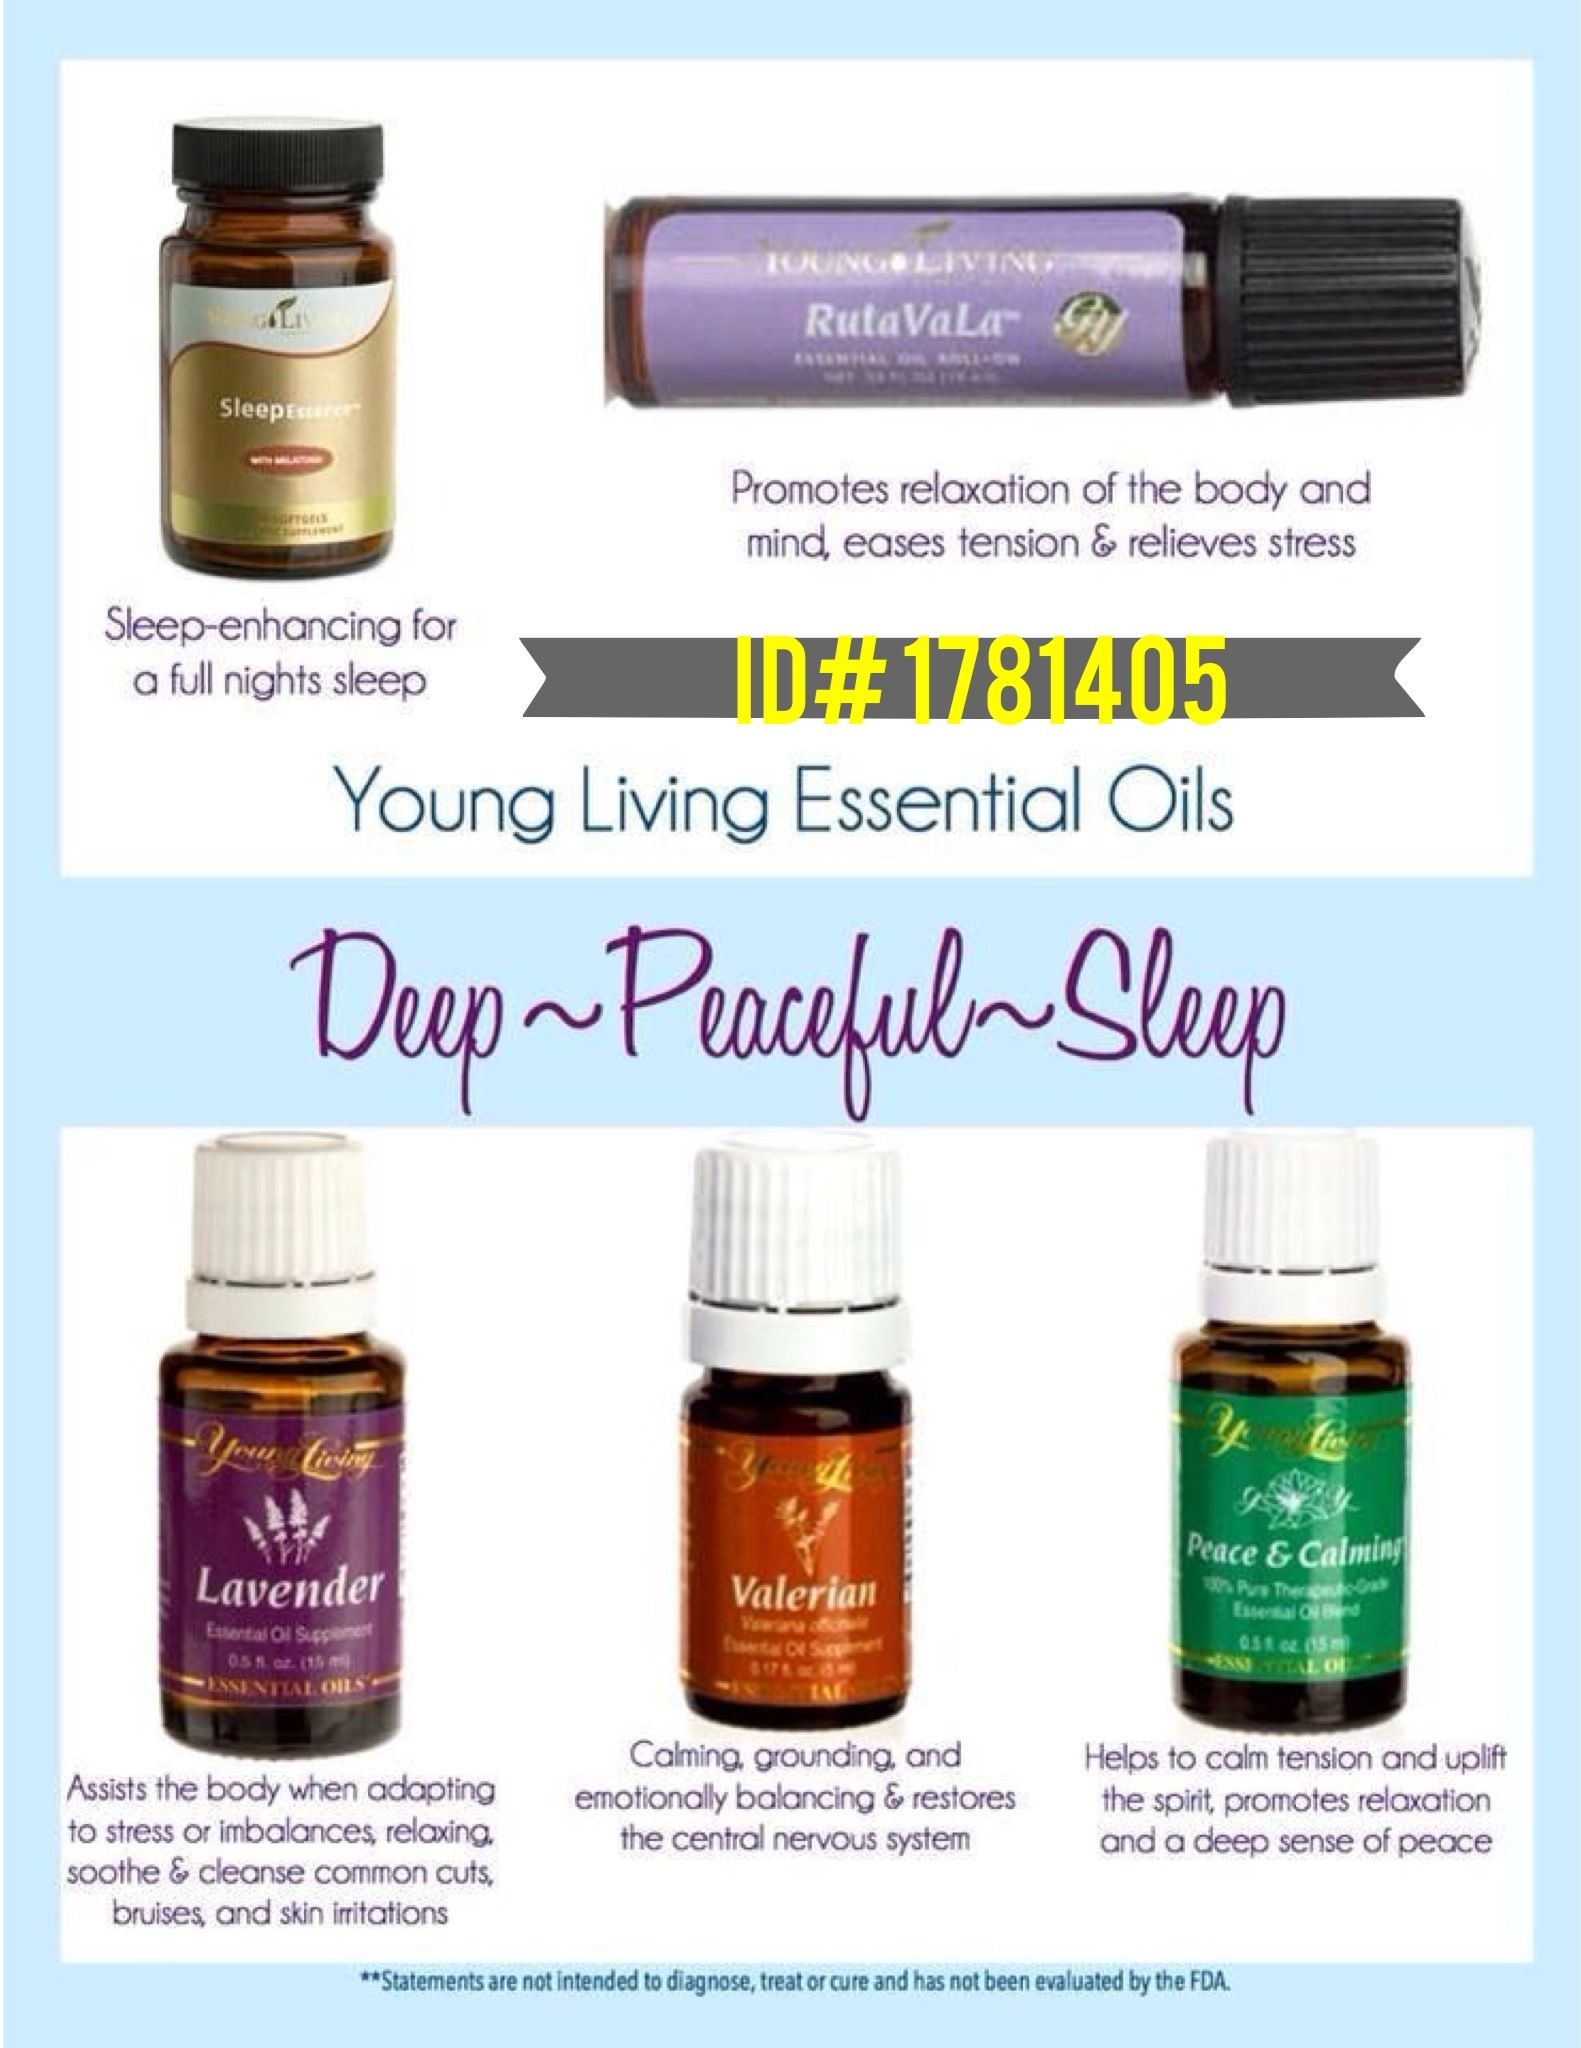 Need sleep?? https://www.youngliving.com/signup/?site=US&sponsorid=1781405&enrollerid=1781405